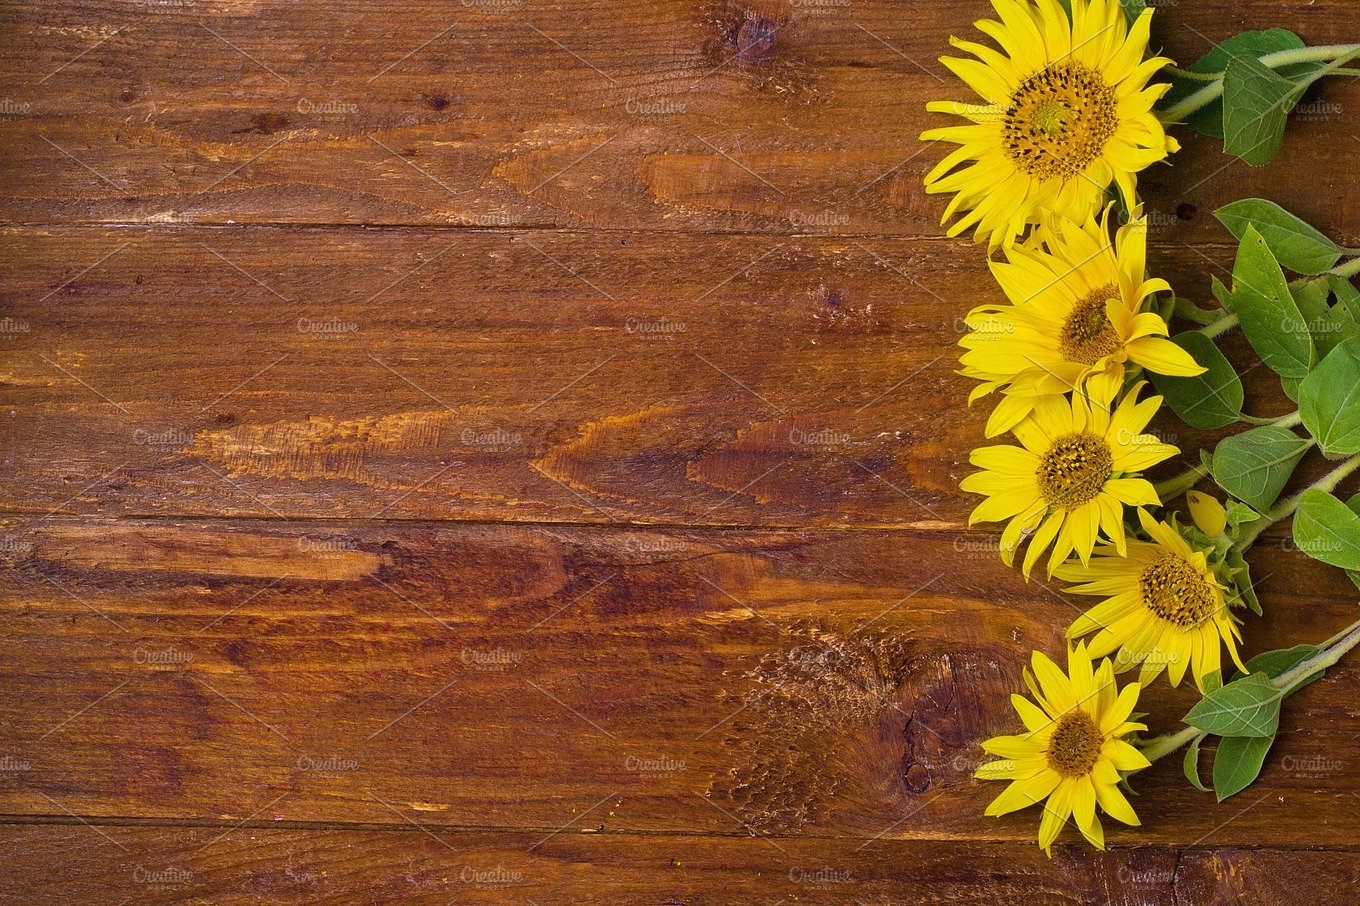 Sunflower Wooden Background Food Images Creative Market